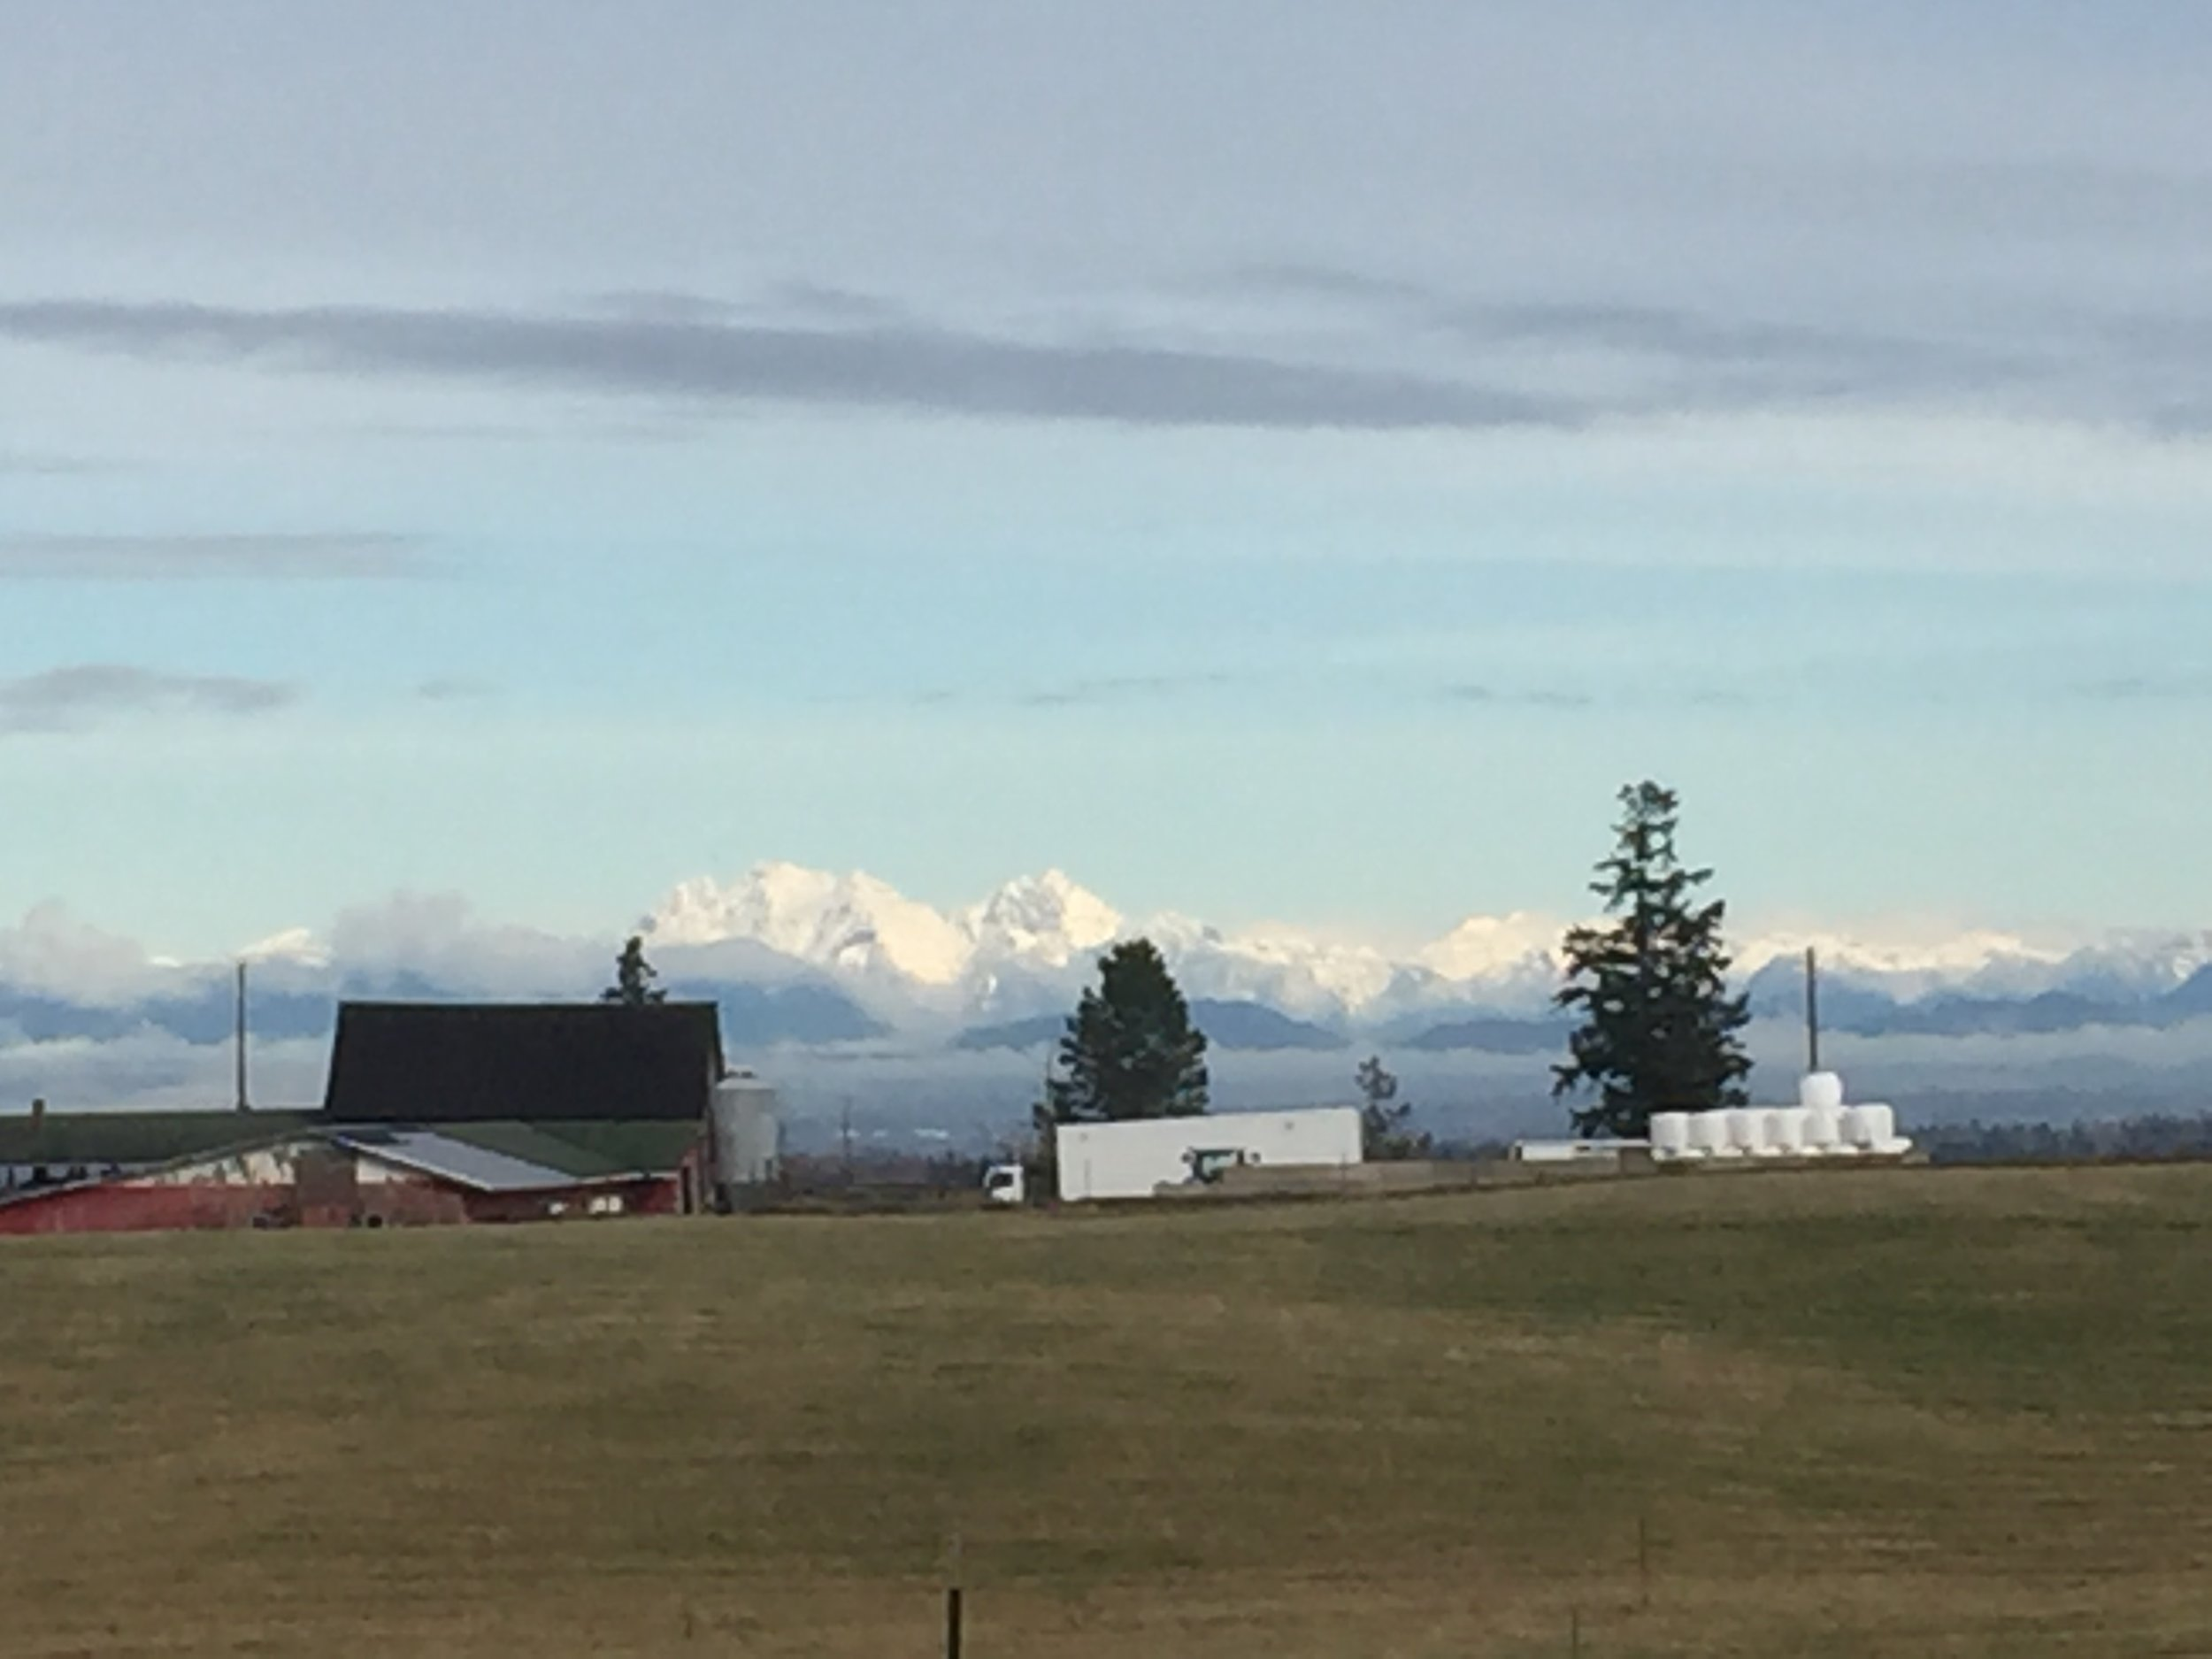 The pigs have a great view of the Canadian Cascade range, and the new mobile processing unit of the North Cascades Meat Producers Cooperative. This unit lives at Circle F these days, and the cooperative is getting ready for the launch of their MPU this fall.